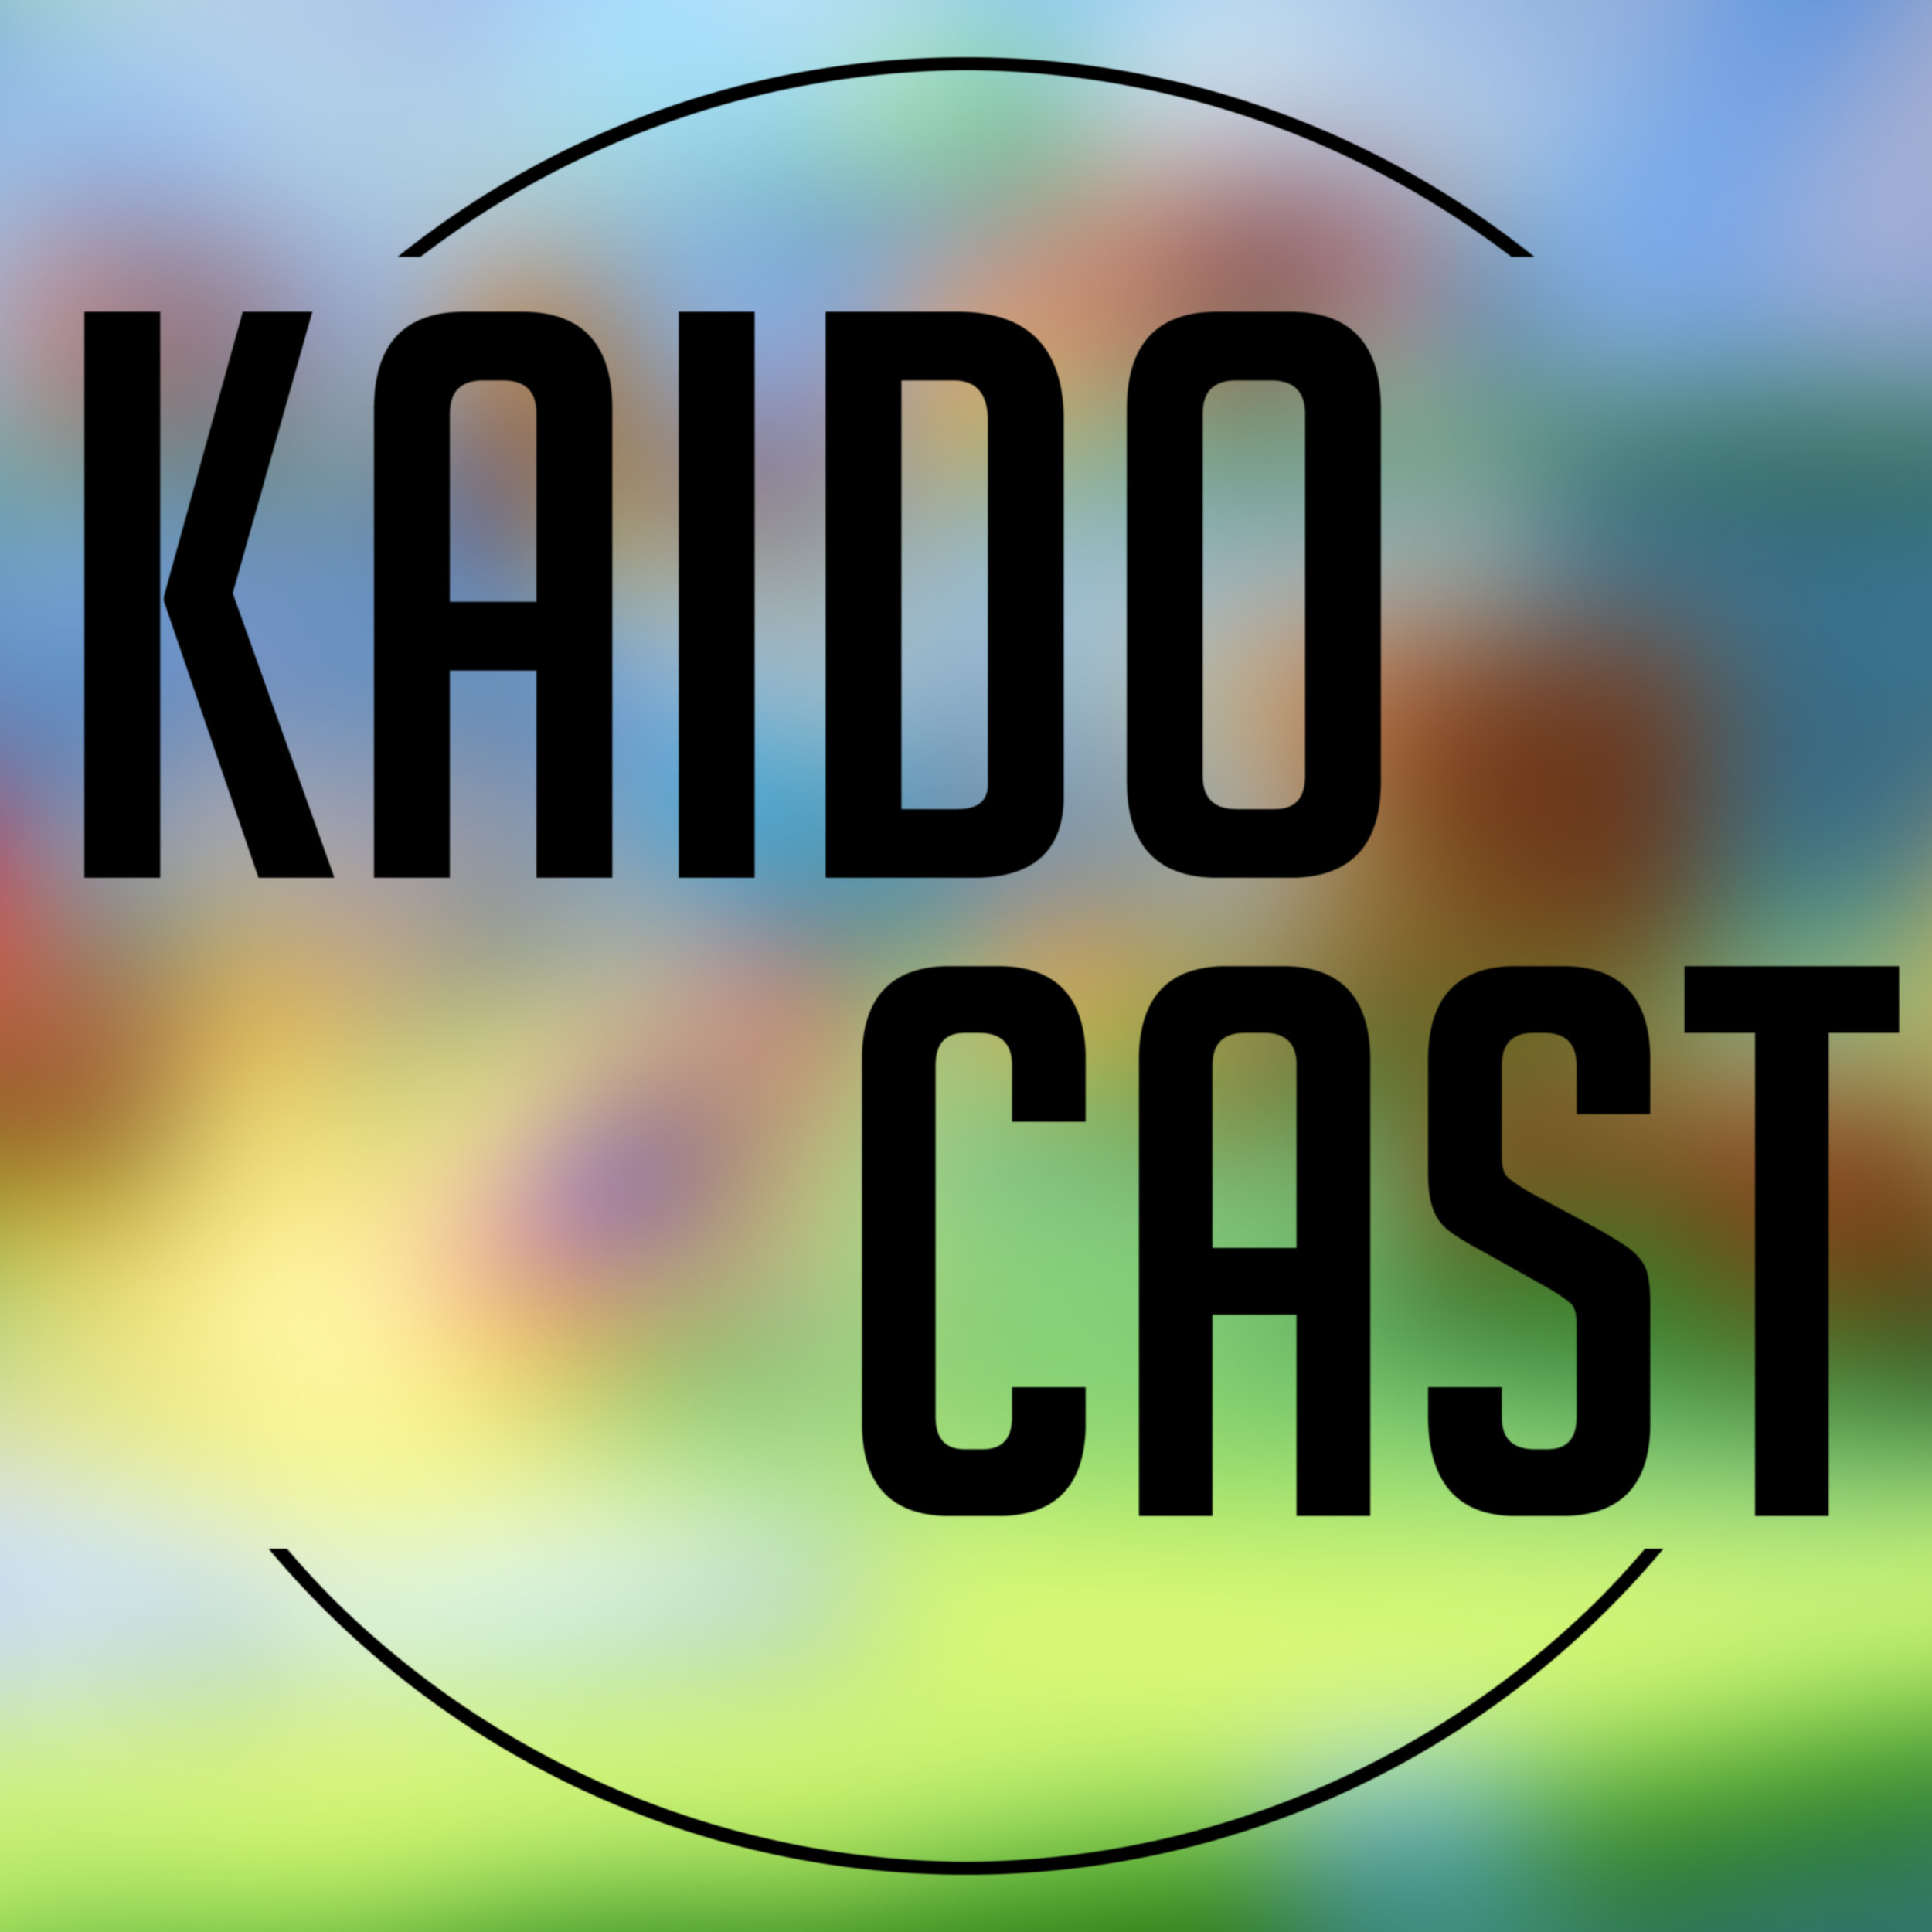 KAIDO Cast 13 - ASMario - This week Dave talks about small dreams, Rob survives the cult by not playing their games, and Zac gets his XCOM on.